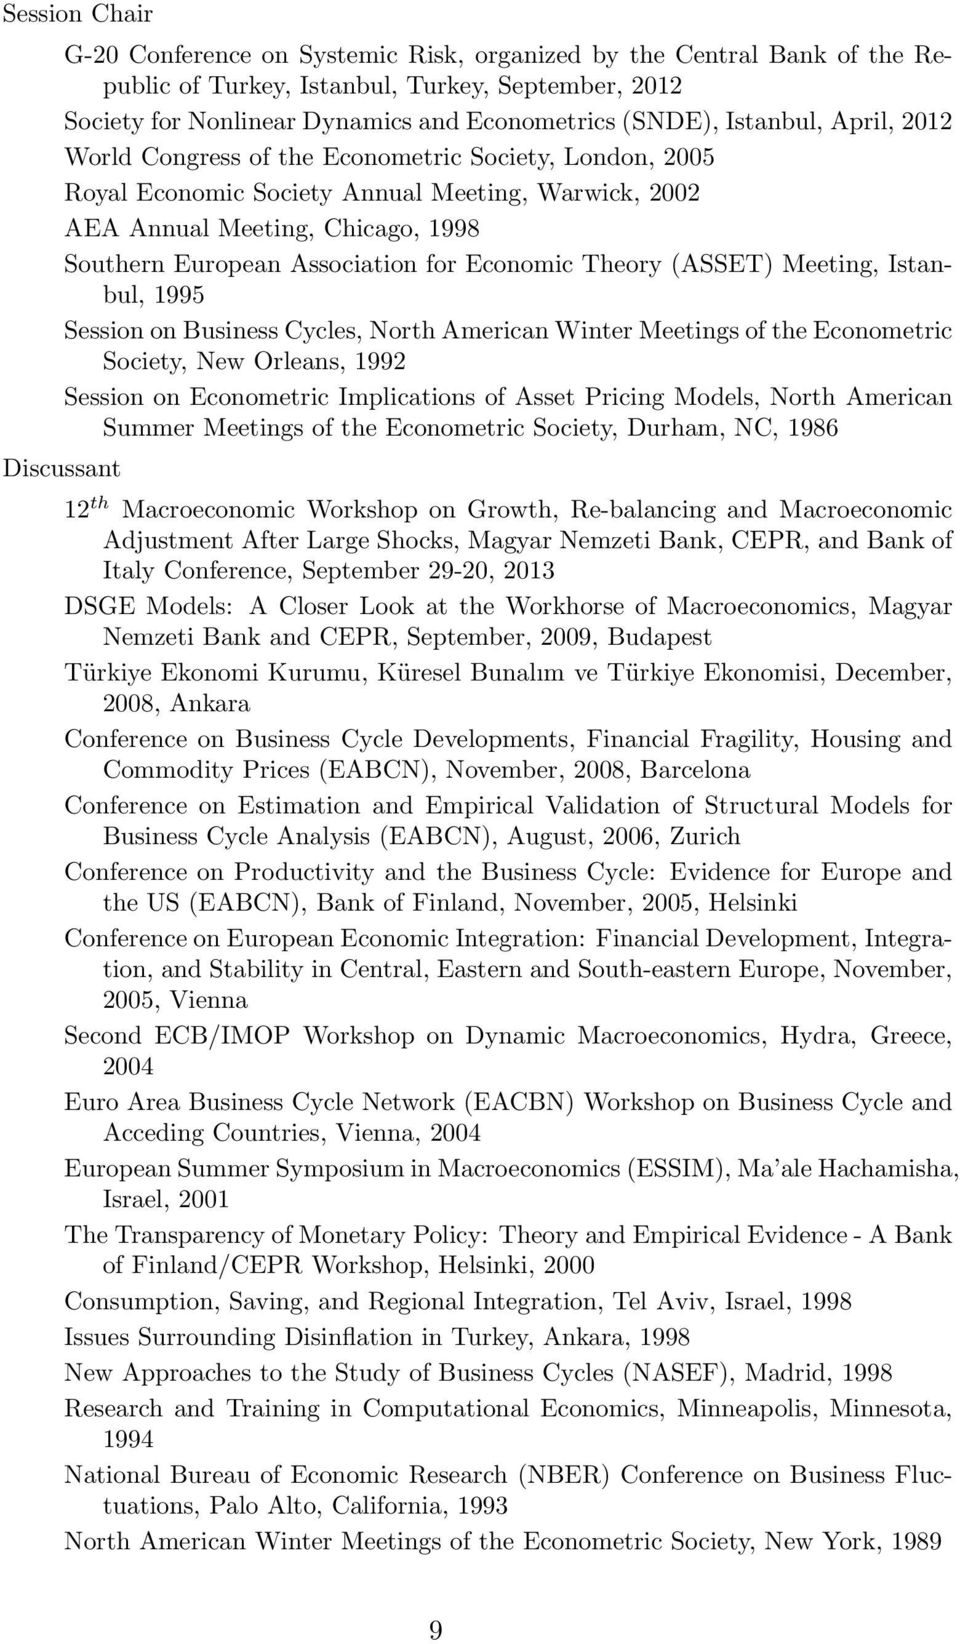 Economic Theory (ASSET) Meeting, Istanbul, 1995 Session on Business Cycles, North American Winter Meetings of the Econometric Society, New Orleans, 1992 Session on Econometric Implications of Asset